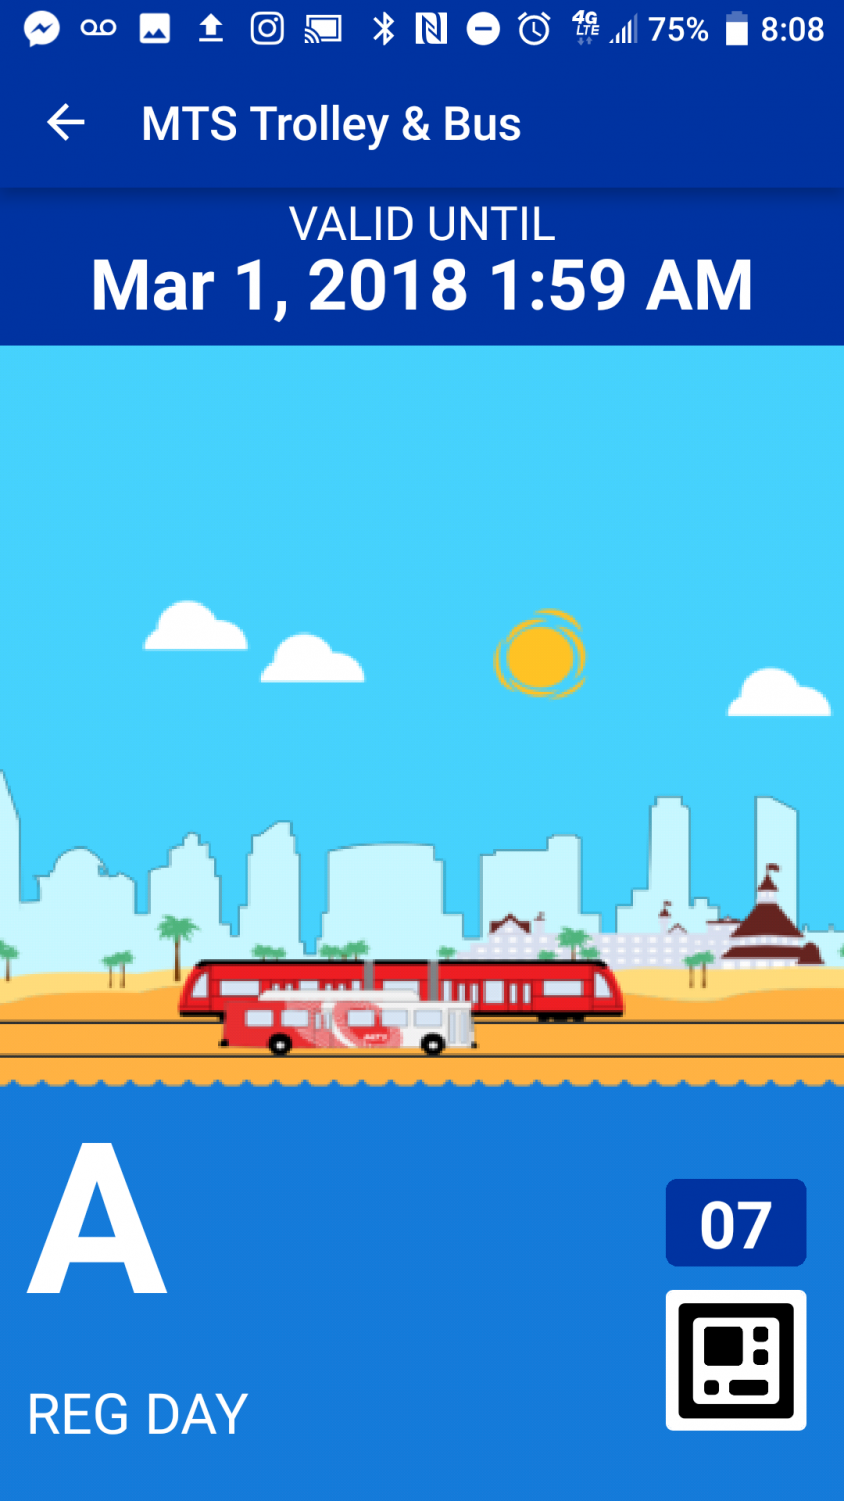 A screenshot of the app shows the animated mobile ticket.